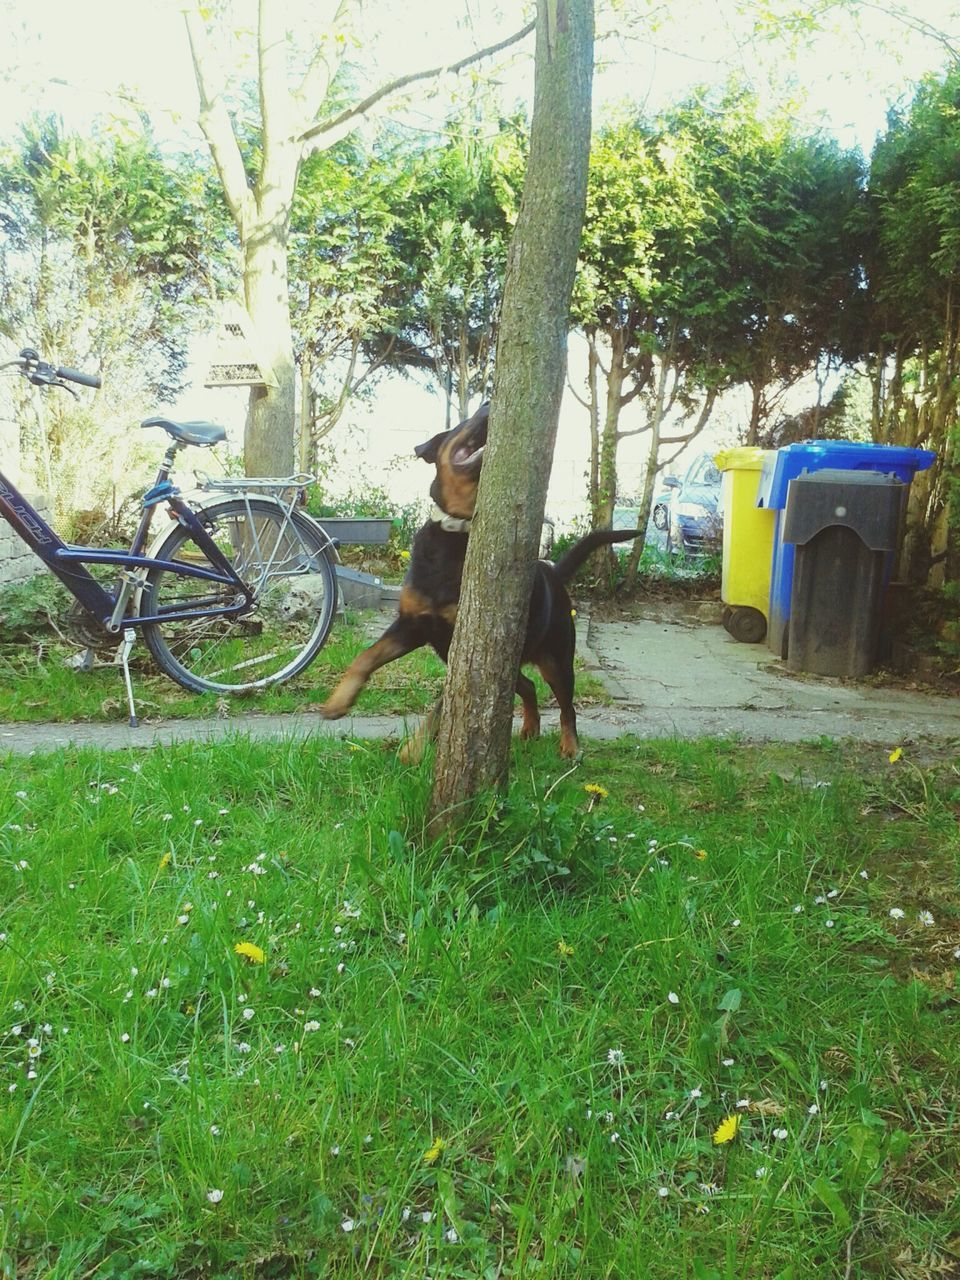 bicycle, transportation, grass, land vehicle, mode of transport, tree, stationary, day, nature, growth, outdoors, green color, field, no people, tree trunk, animal themes, mammal